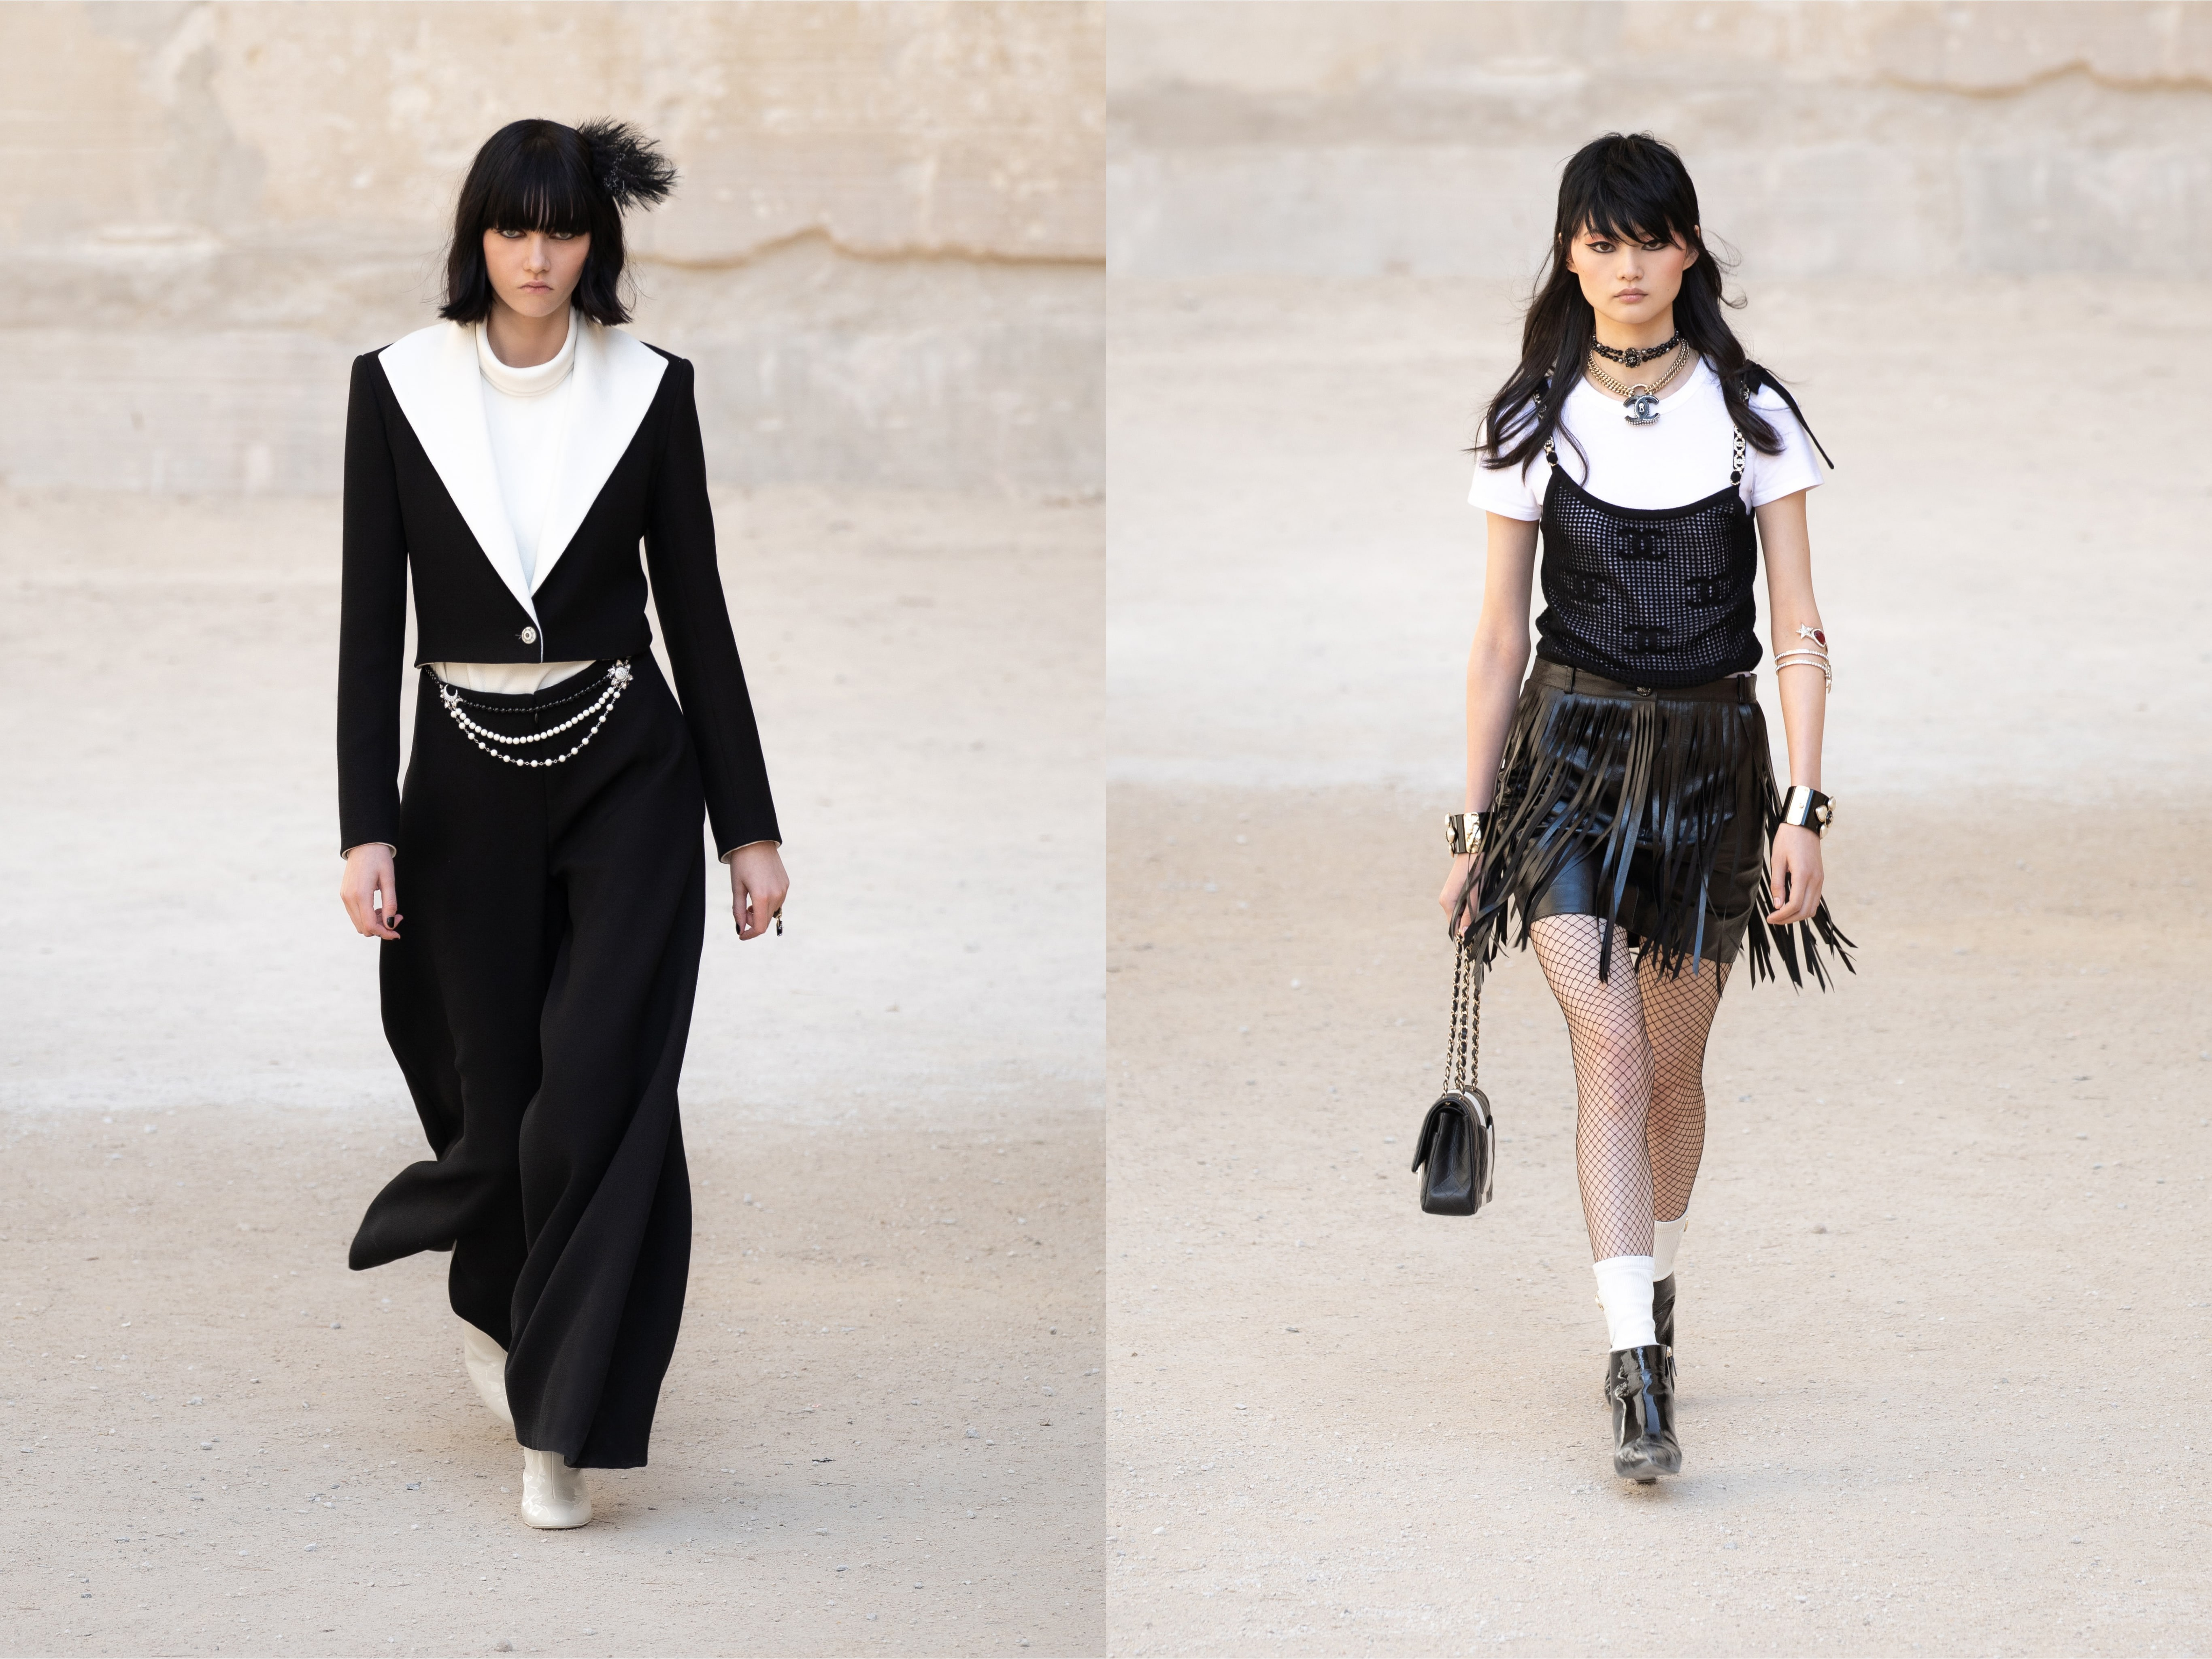 two models walk the runway in black and white punk-inspired Chanel cruise looks